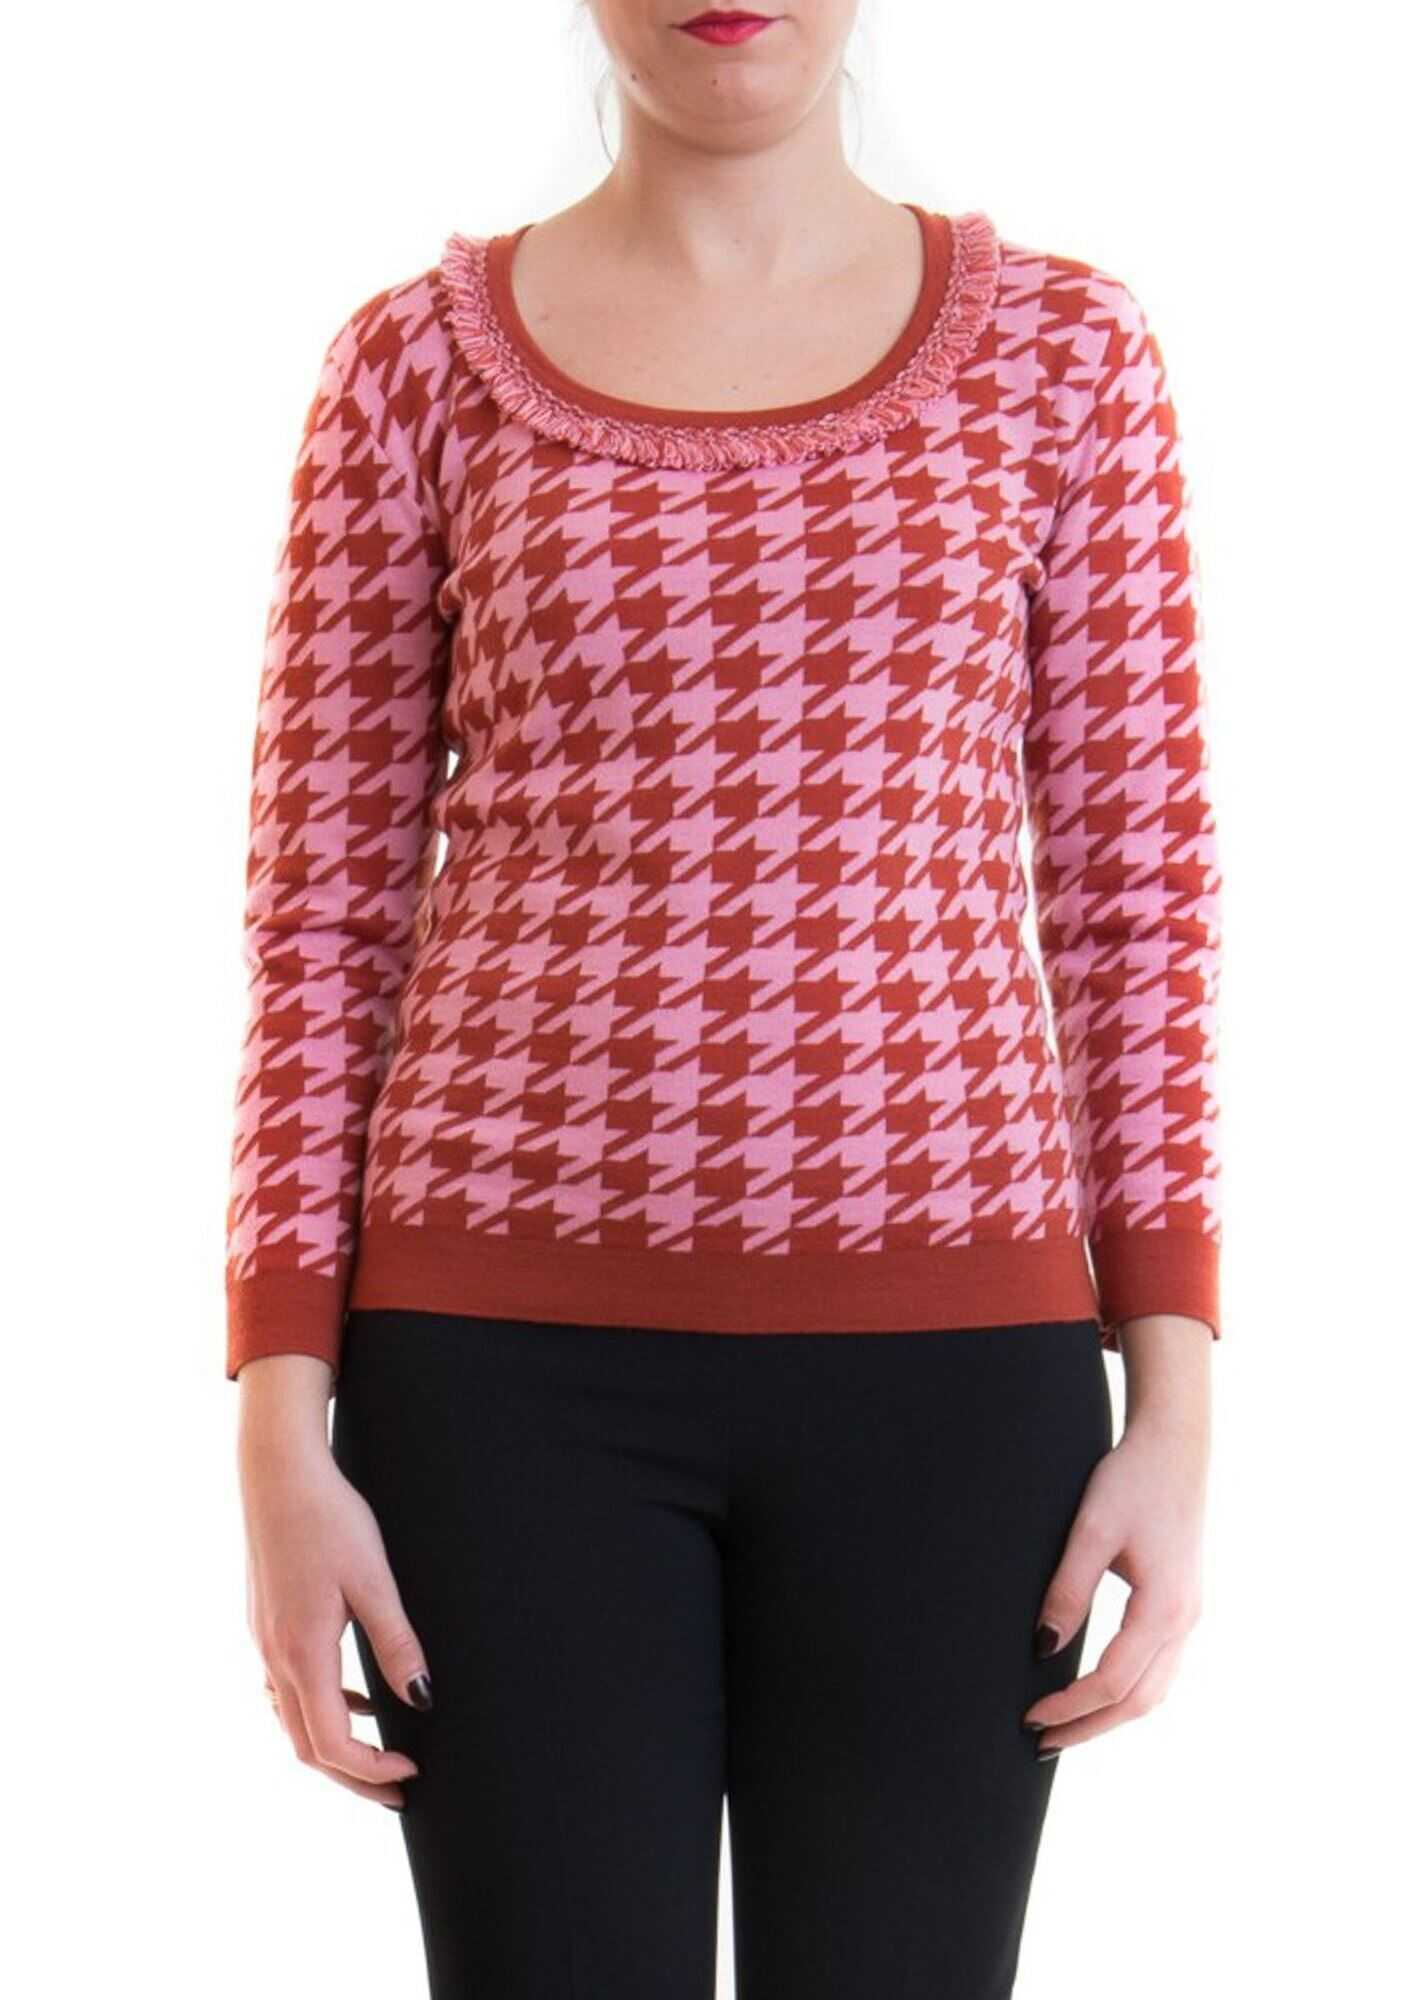 Blumarine Houndstooth Patterned Sweater Pink